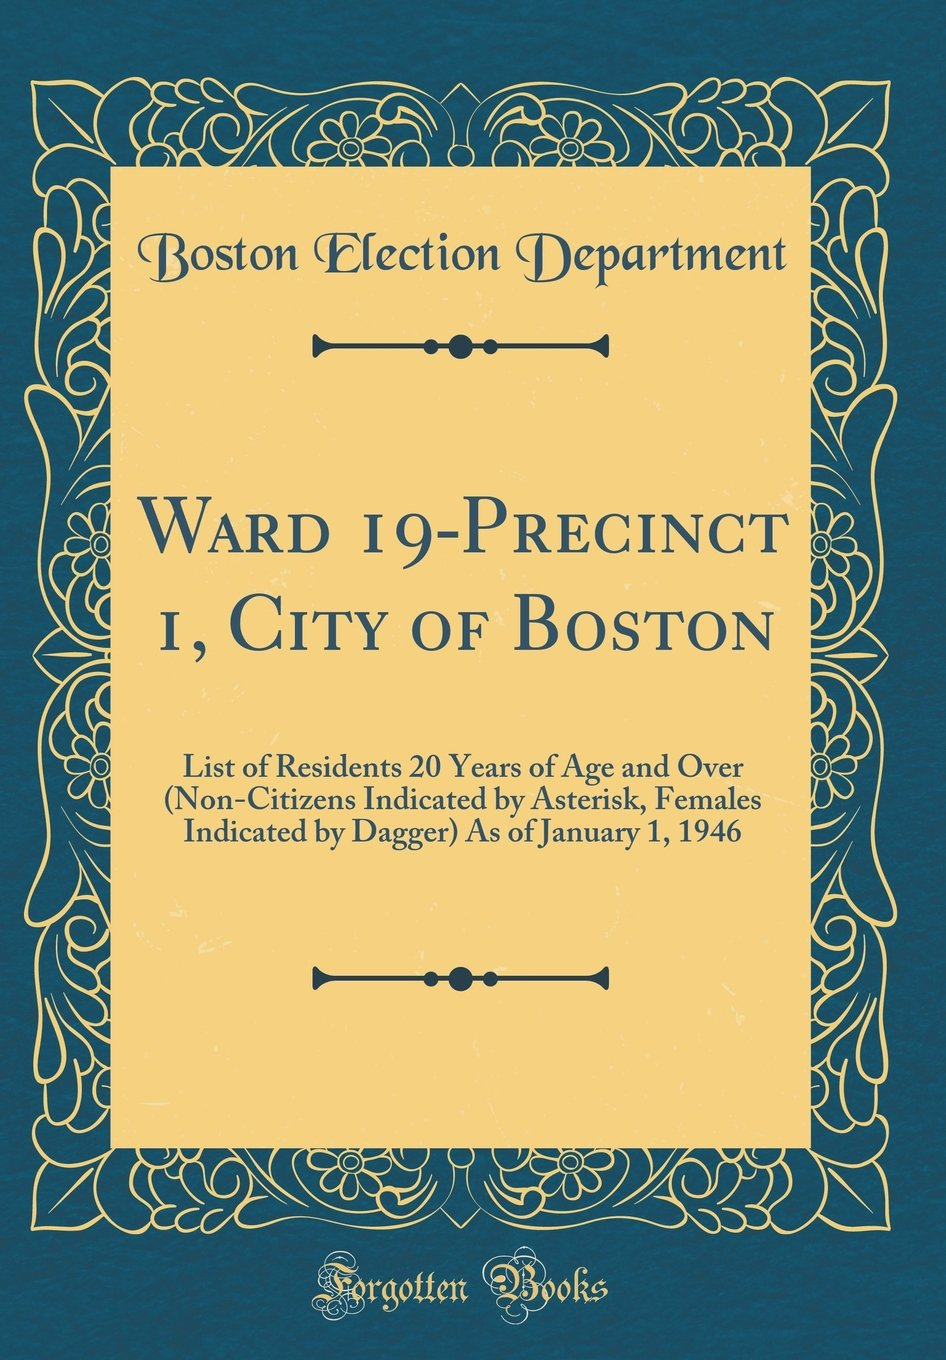 Download Ward 19-Precinct 1, City of Boston: List of Residents 20 Years of Age and Over (Non-Citizens Indicated by Asterisk, Females Indicated by Dagger) As of January 1, 1946 (Classic Reprint) pdf